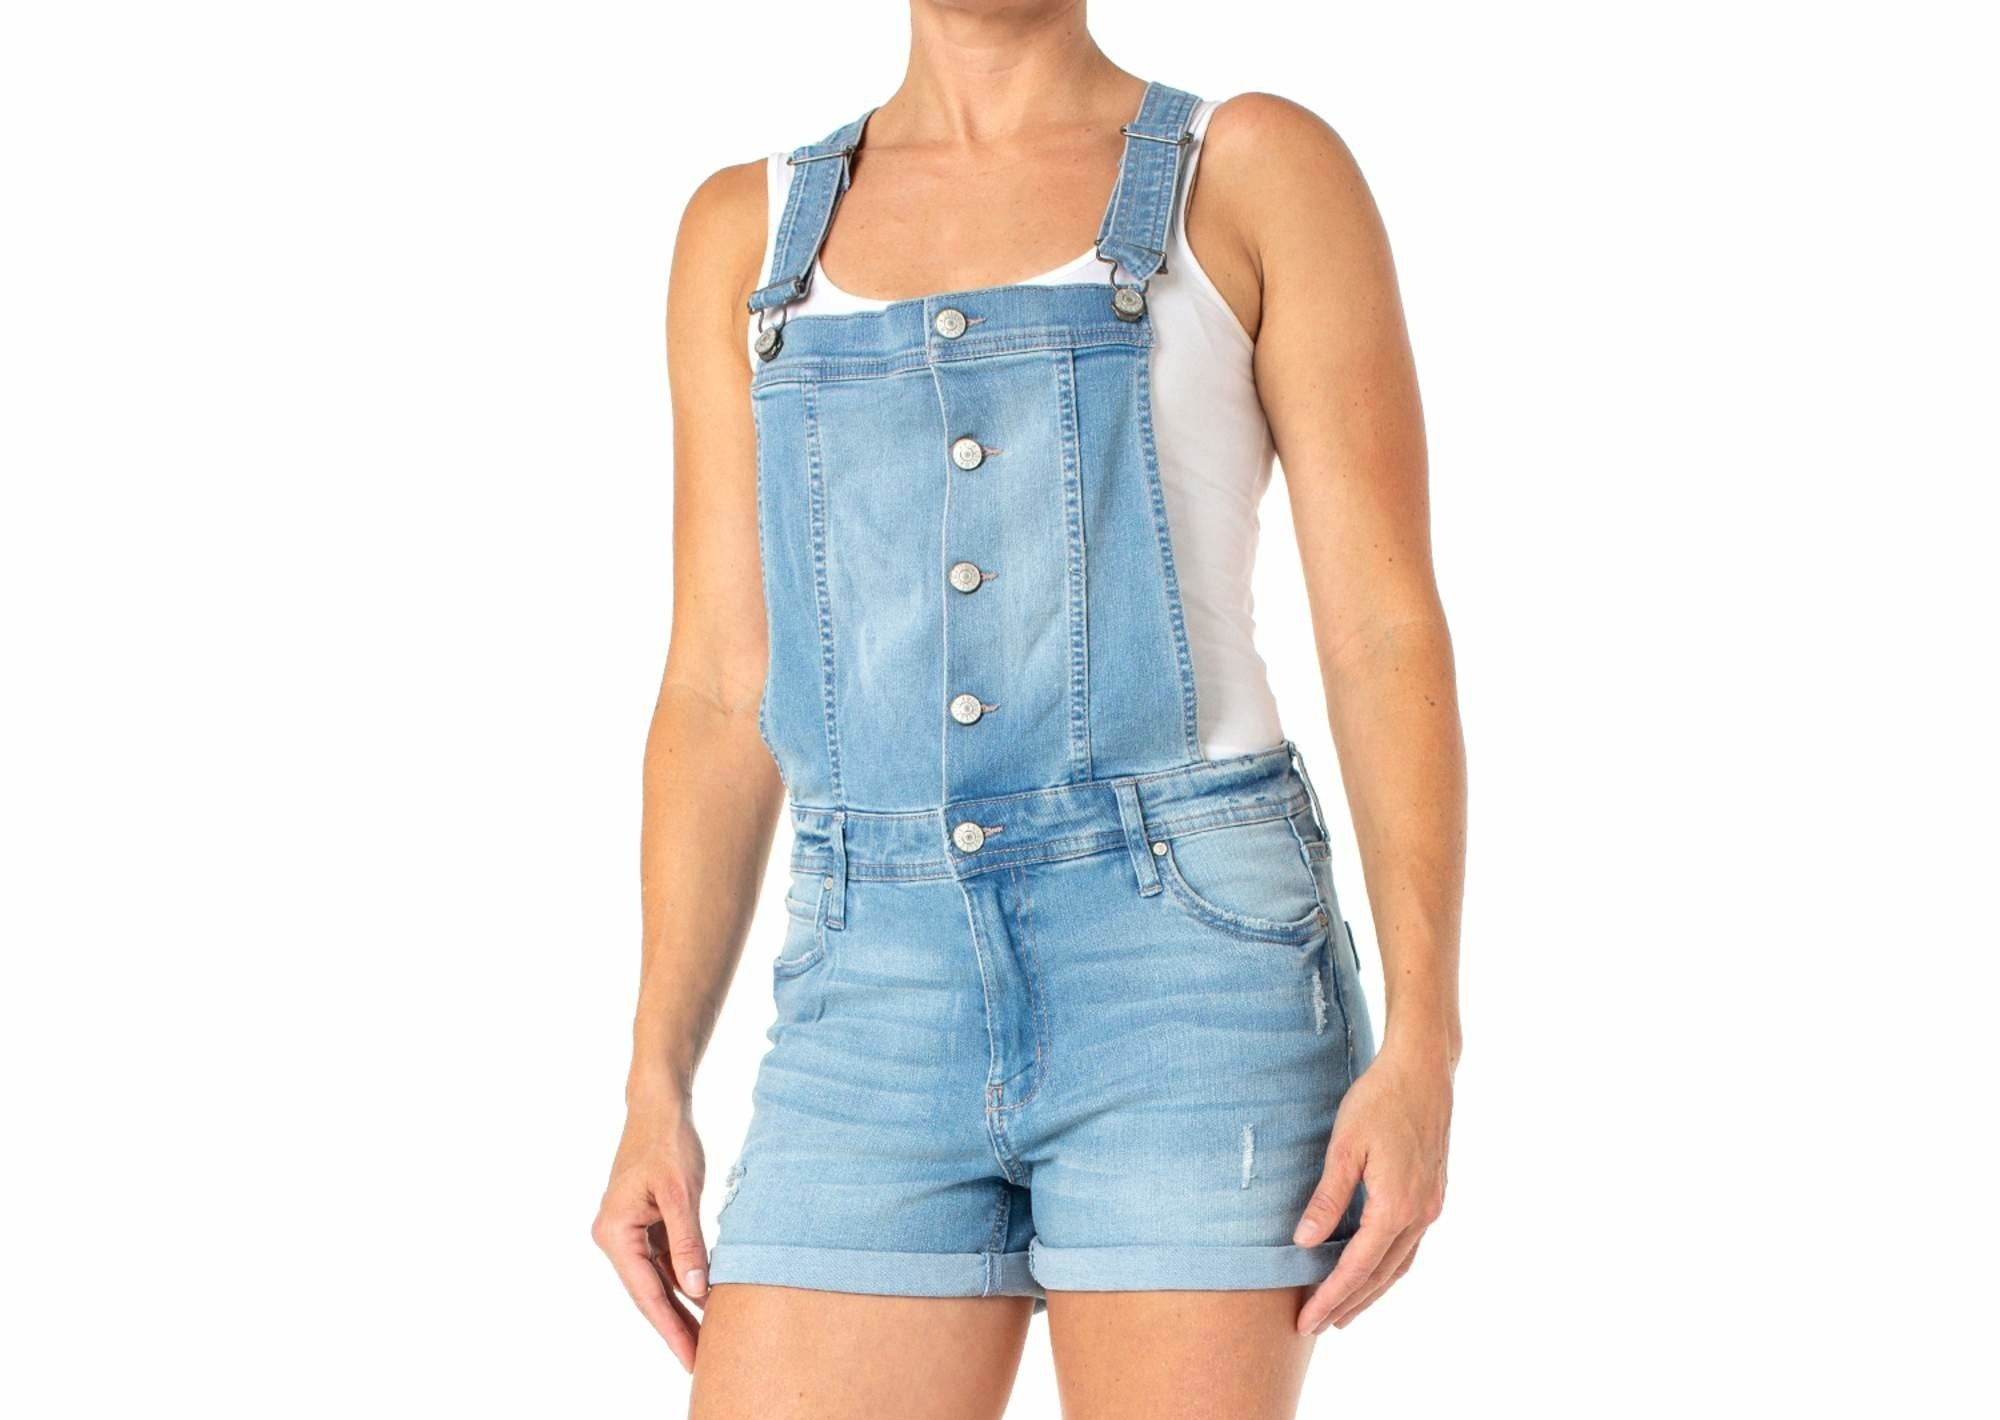 a model wearing the short denim overalls